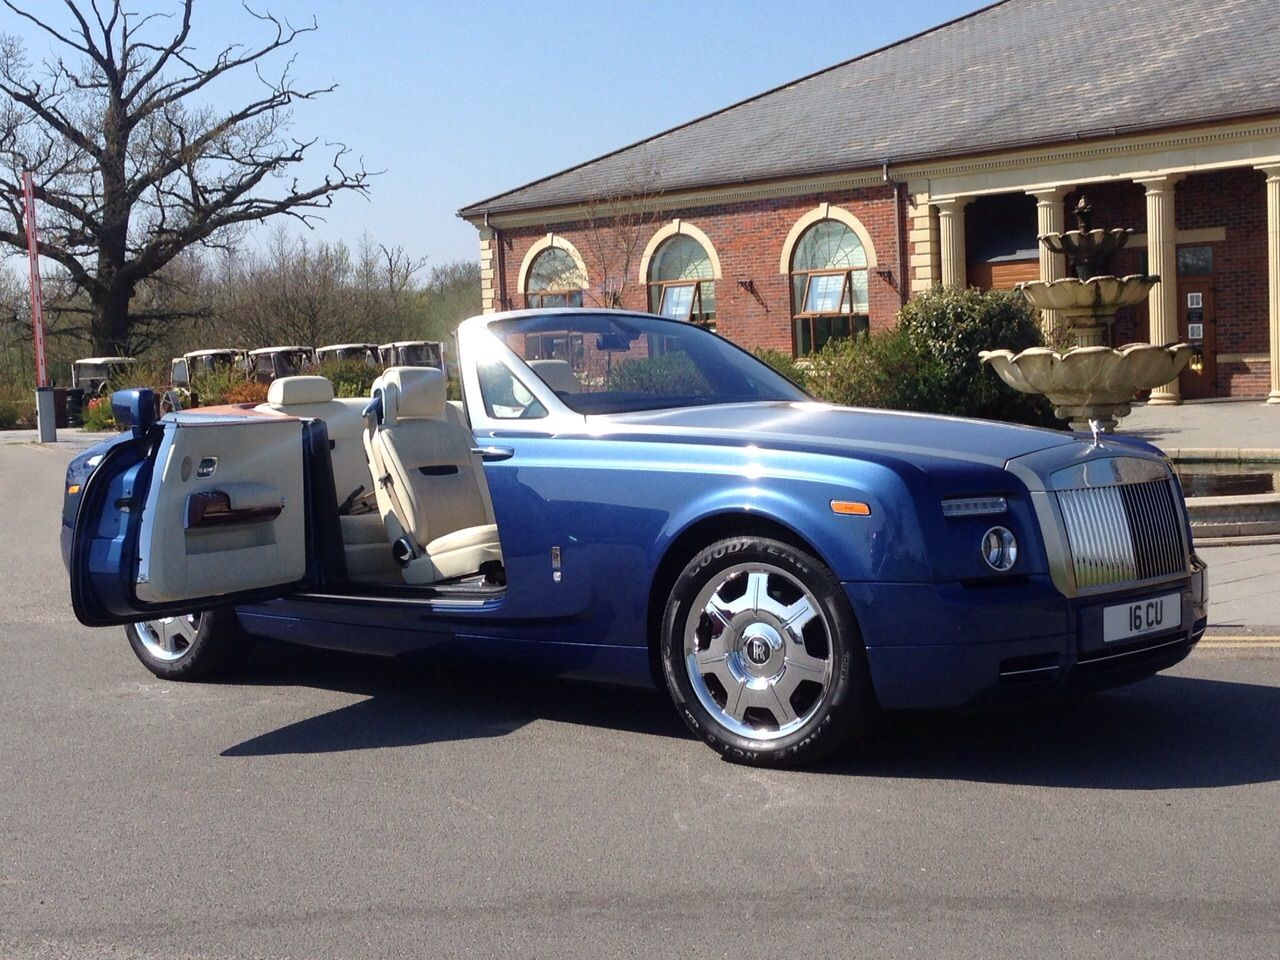 Rolls Royce Drophead Hire Limo And Supercar Hire I Just Stumbled